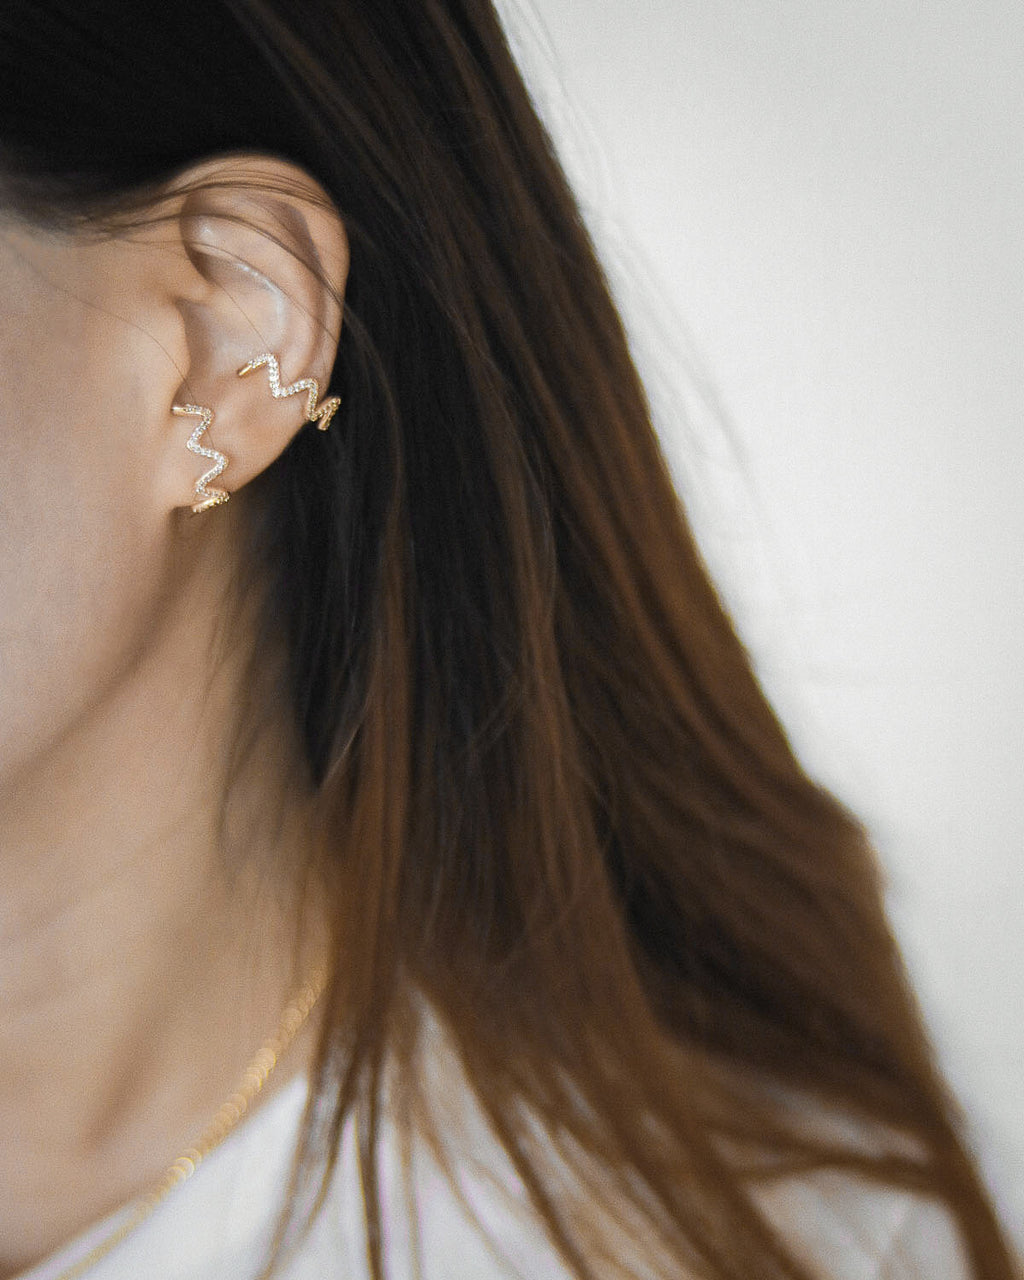 Unique suspender earrings are designed to appear they wrap around your lobes - The Hexad Jewelry